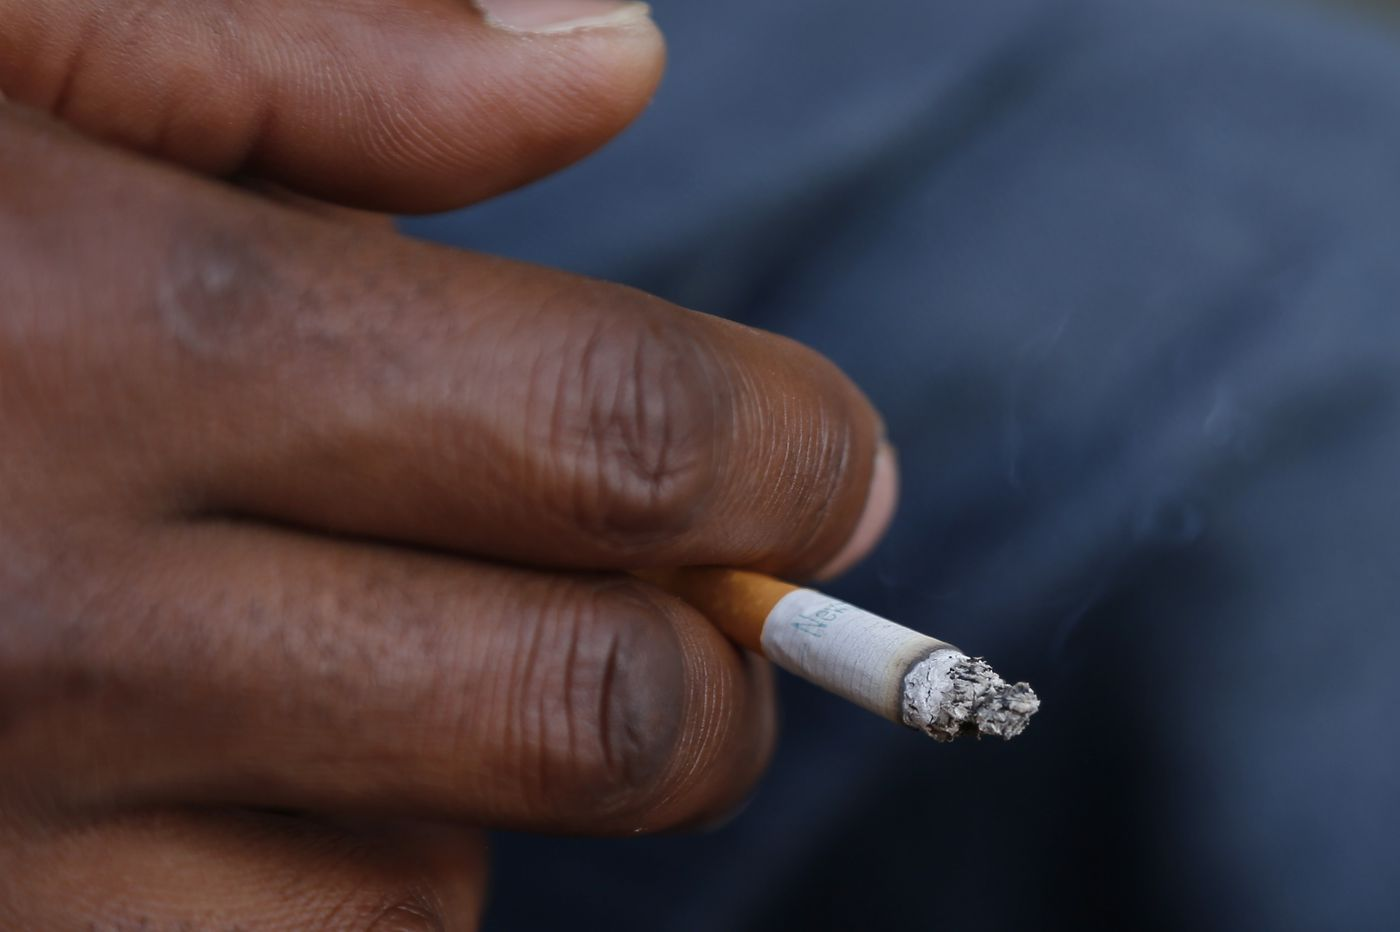 Addiction to opioids and tobacco increases risk for COVID-19, study finds